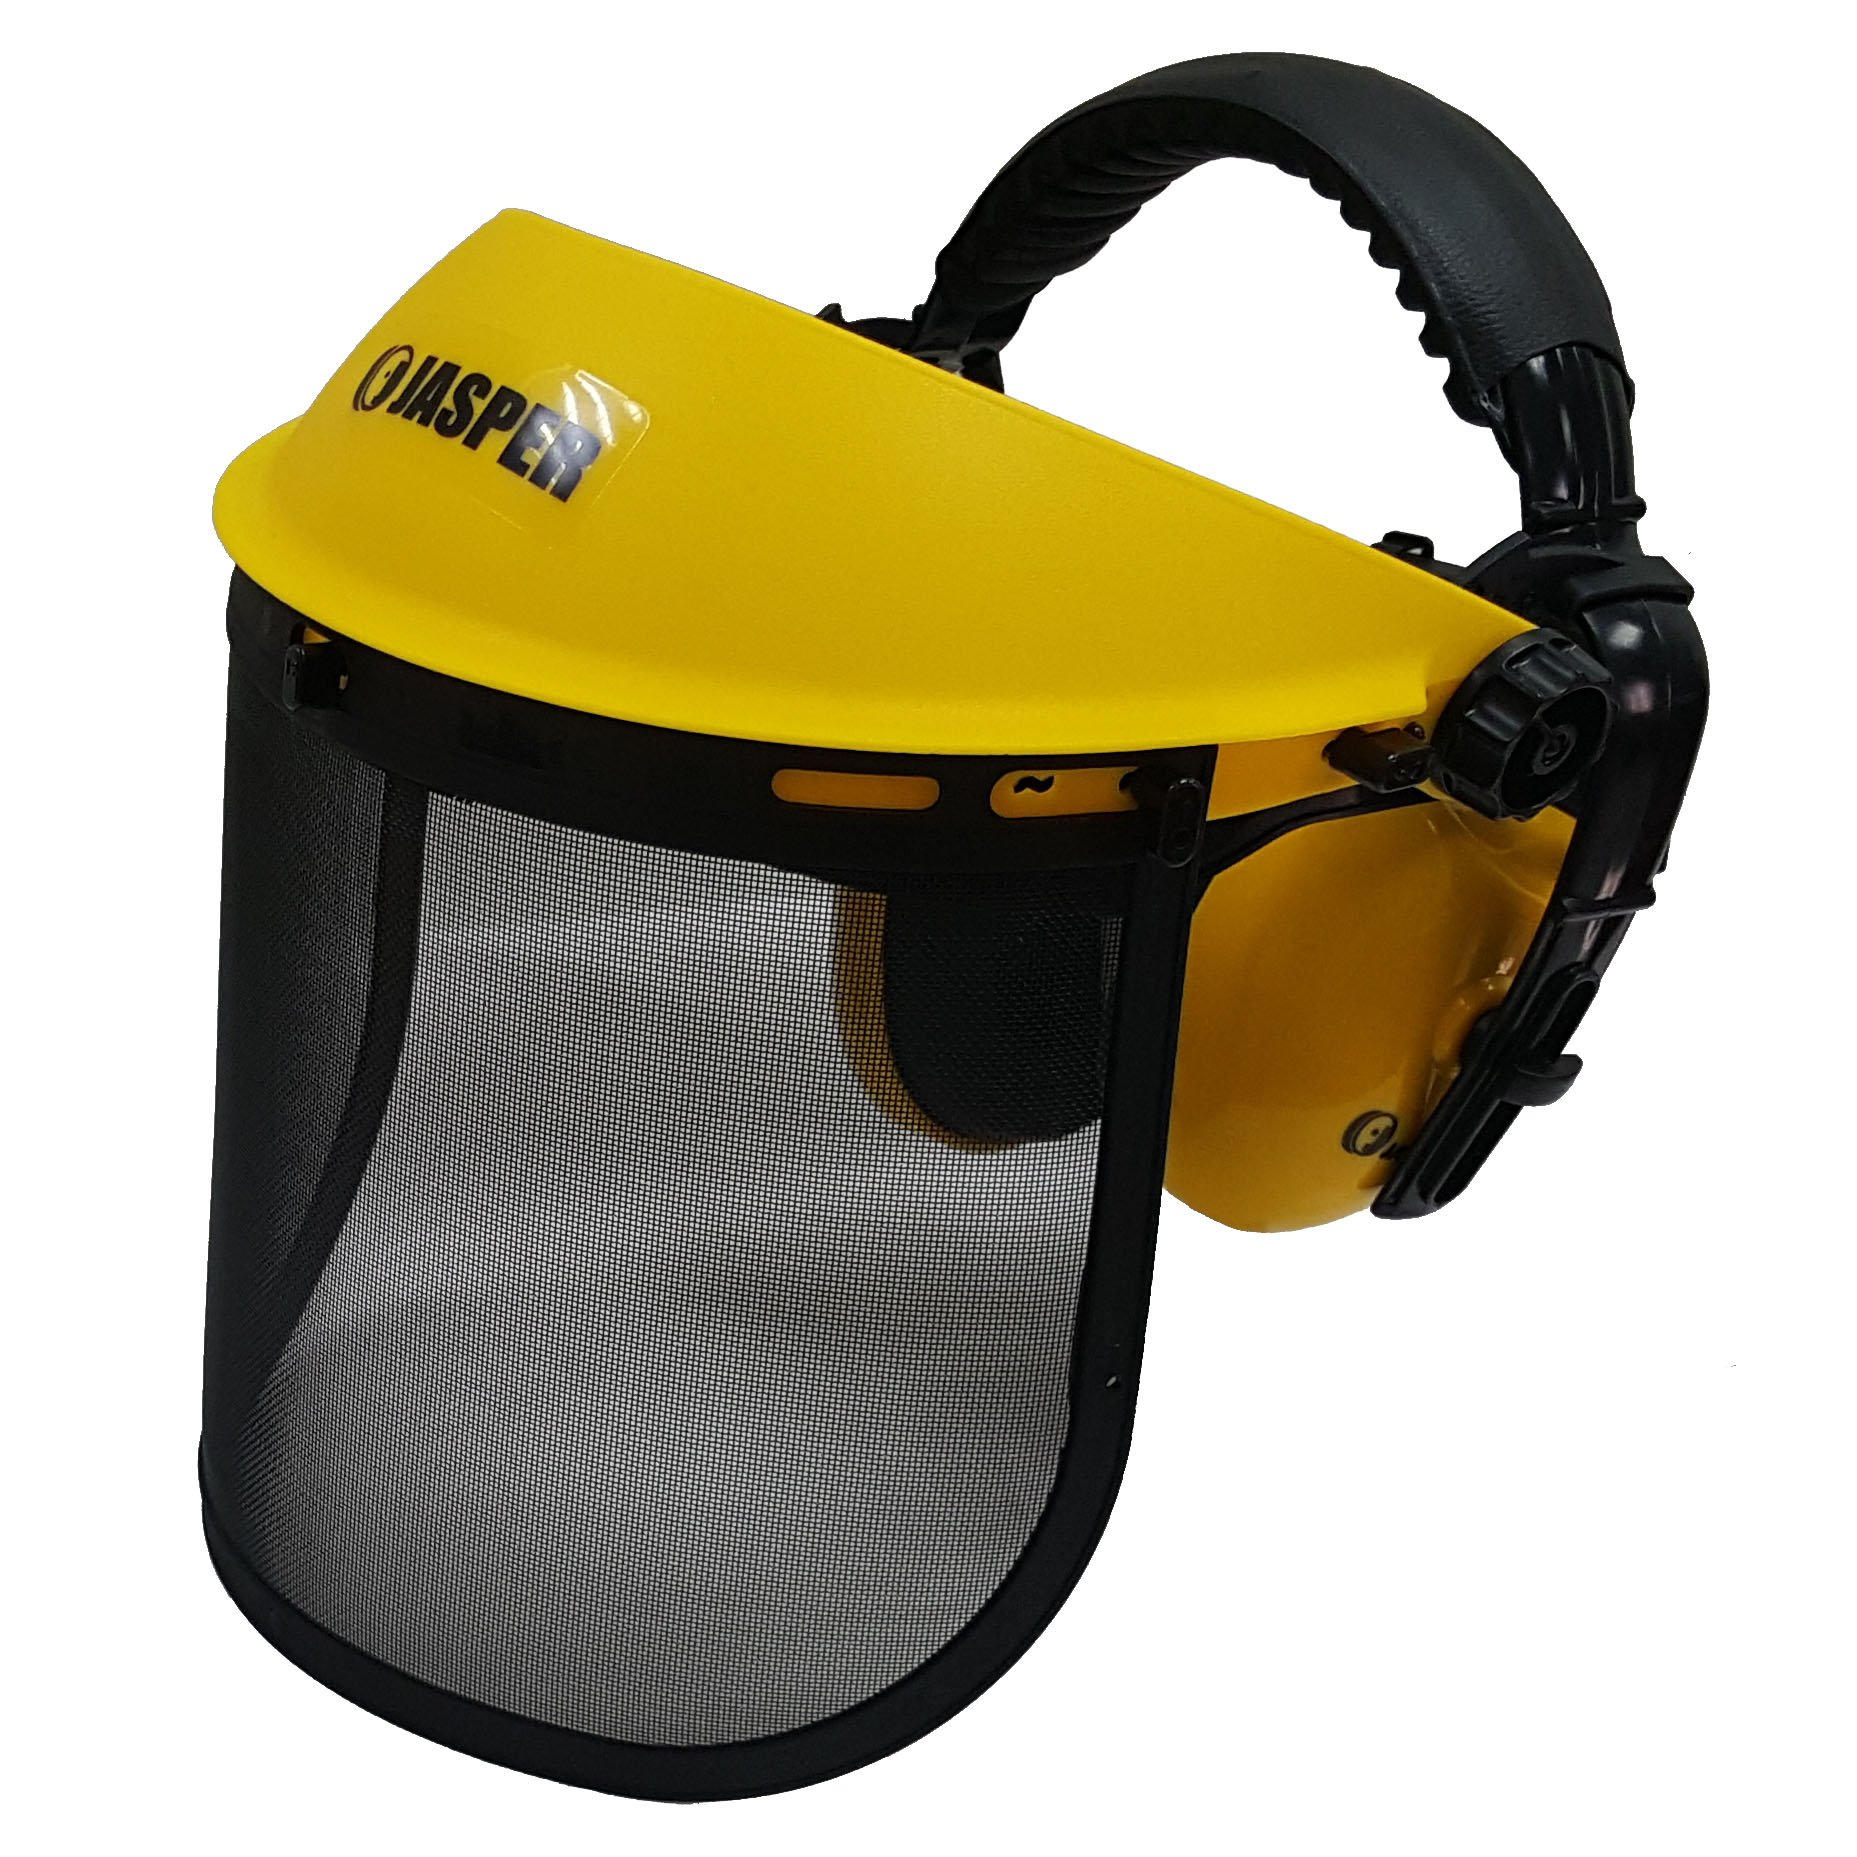 Jasper Browguard Face Shield Mesh Visor with Ear Muffs - ANSI Z87.1 CE EN1731 by Jasper (Image #5)